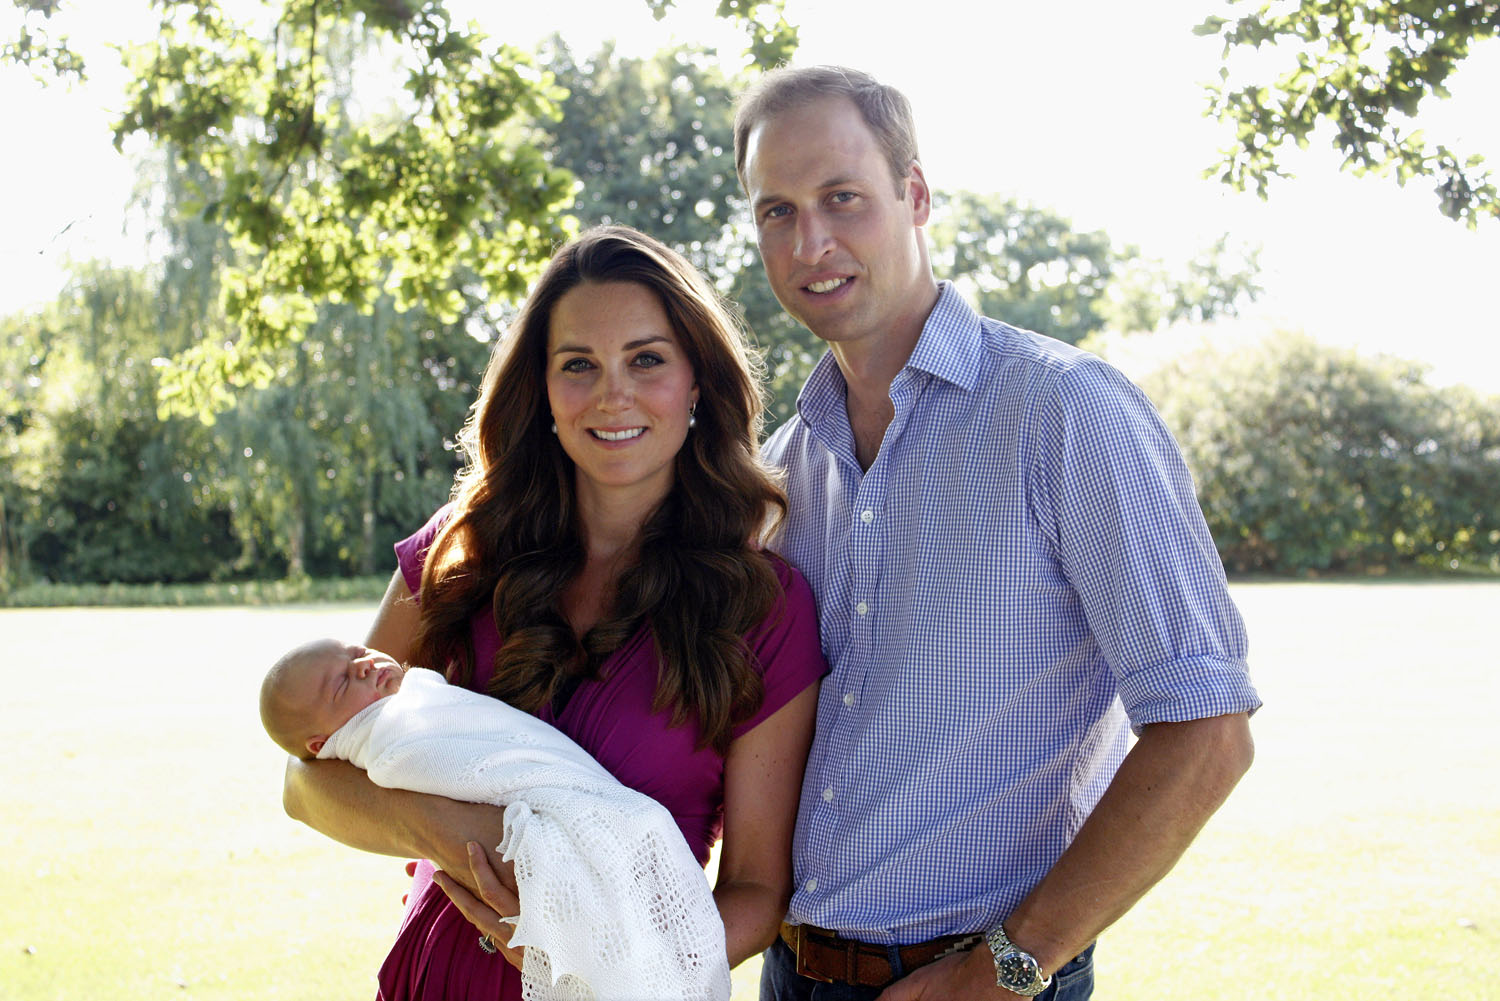 <strong>Lacy Bundle of Joy</strong>Catherine, Duchess of Cambridge and Prince William, Duke of Cambridge pose for a photograph with their son, Prince George Alexander Louis of Cambridge in the garden of the Middleton family home in August 2013 in Bucklebury, Berkshire.